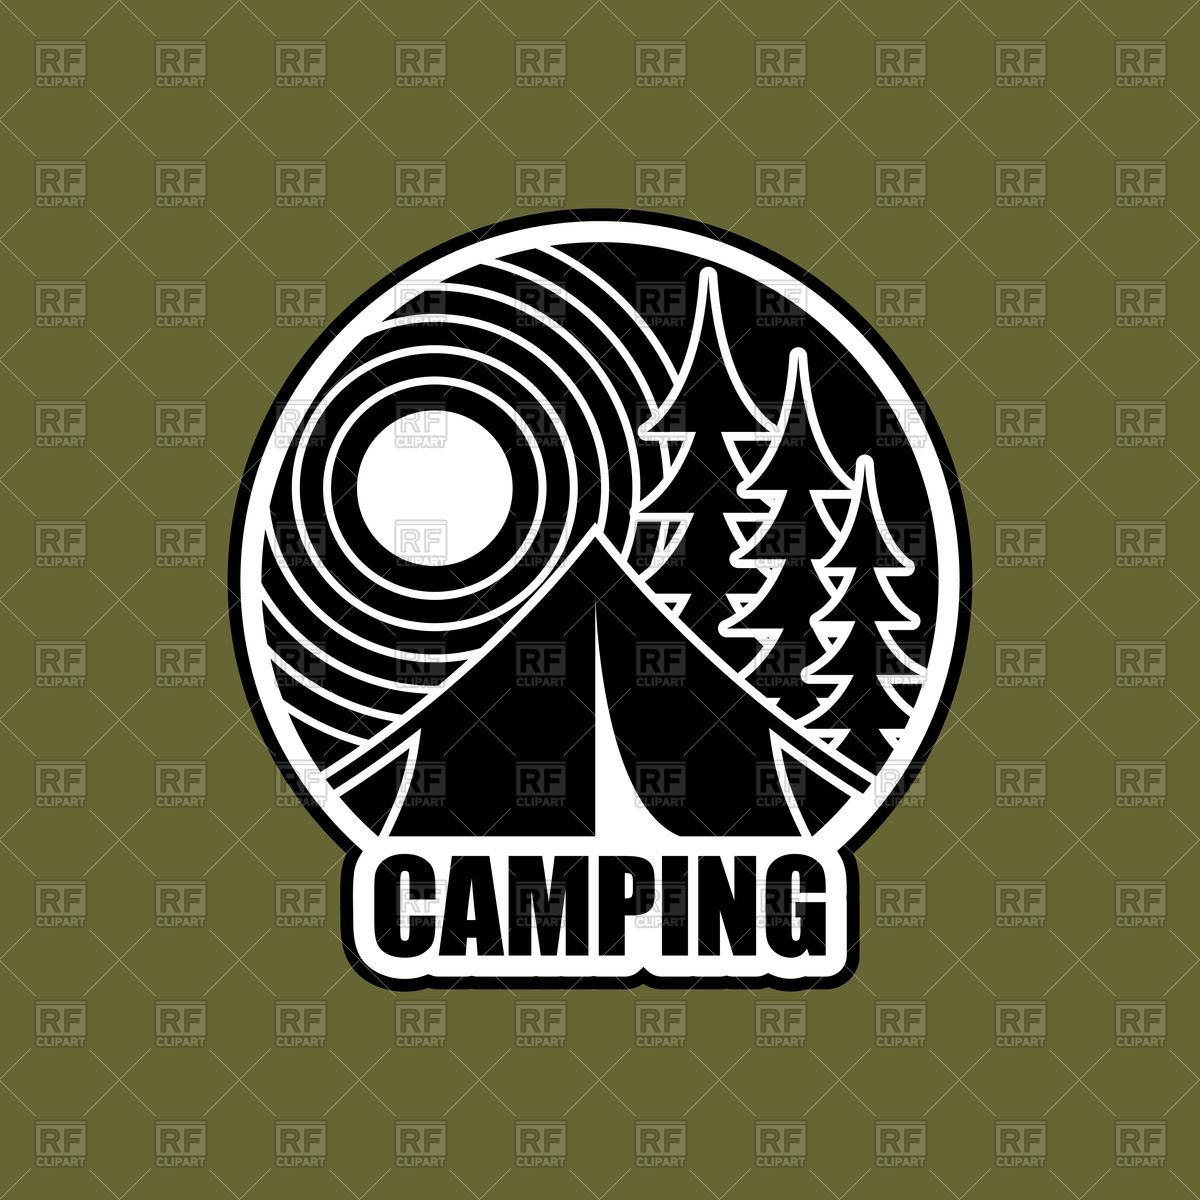 1200x1200 Logo Of Camping, Emblem For Accommodation Camp Vector Image